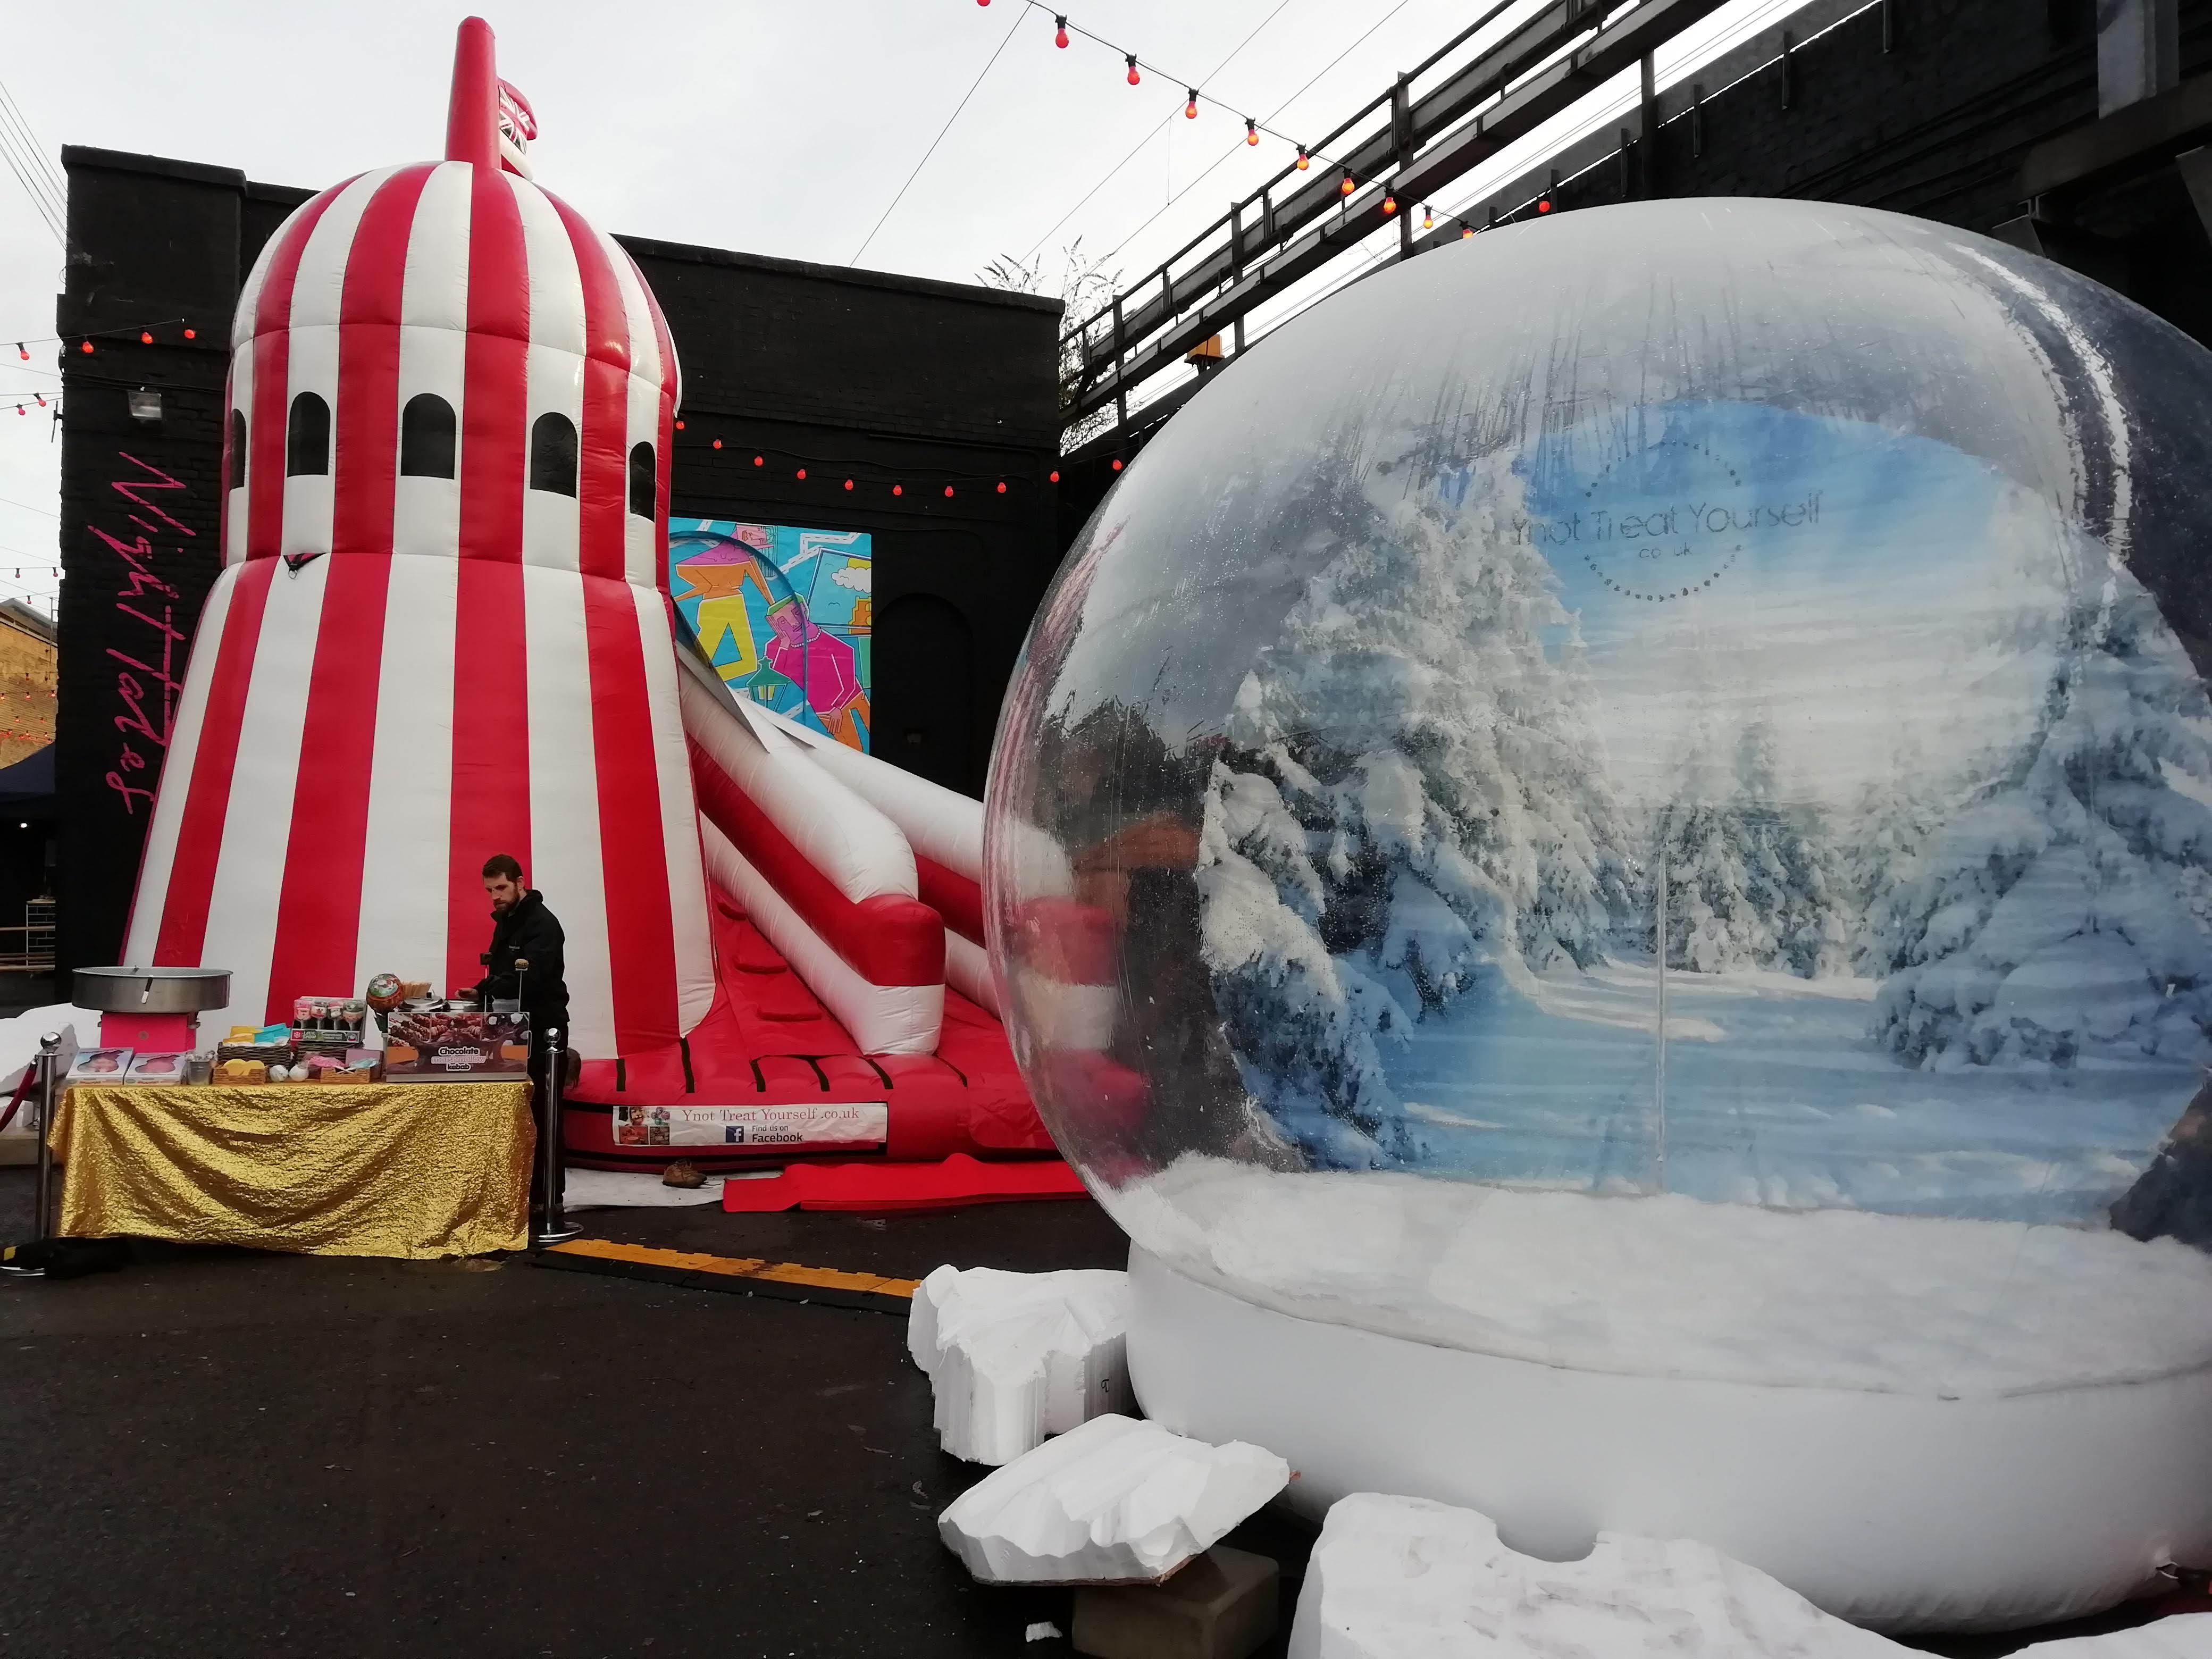 Helter Skelter and Snow Globe